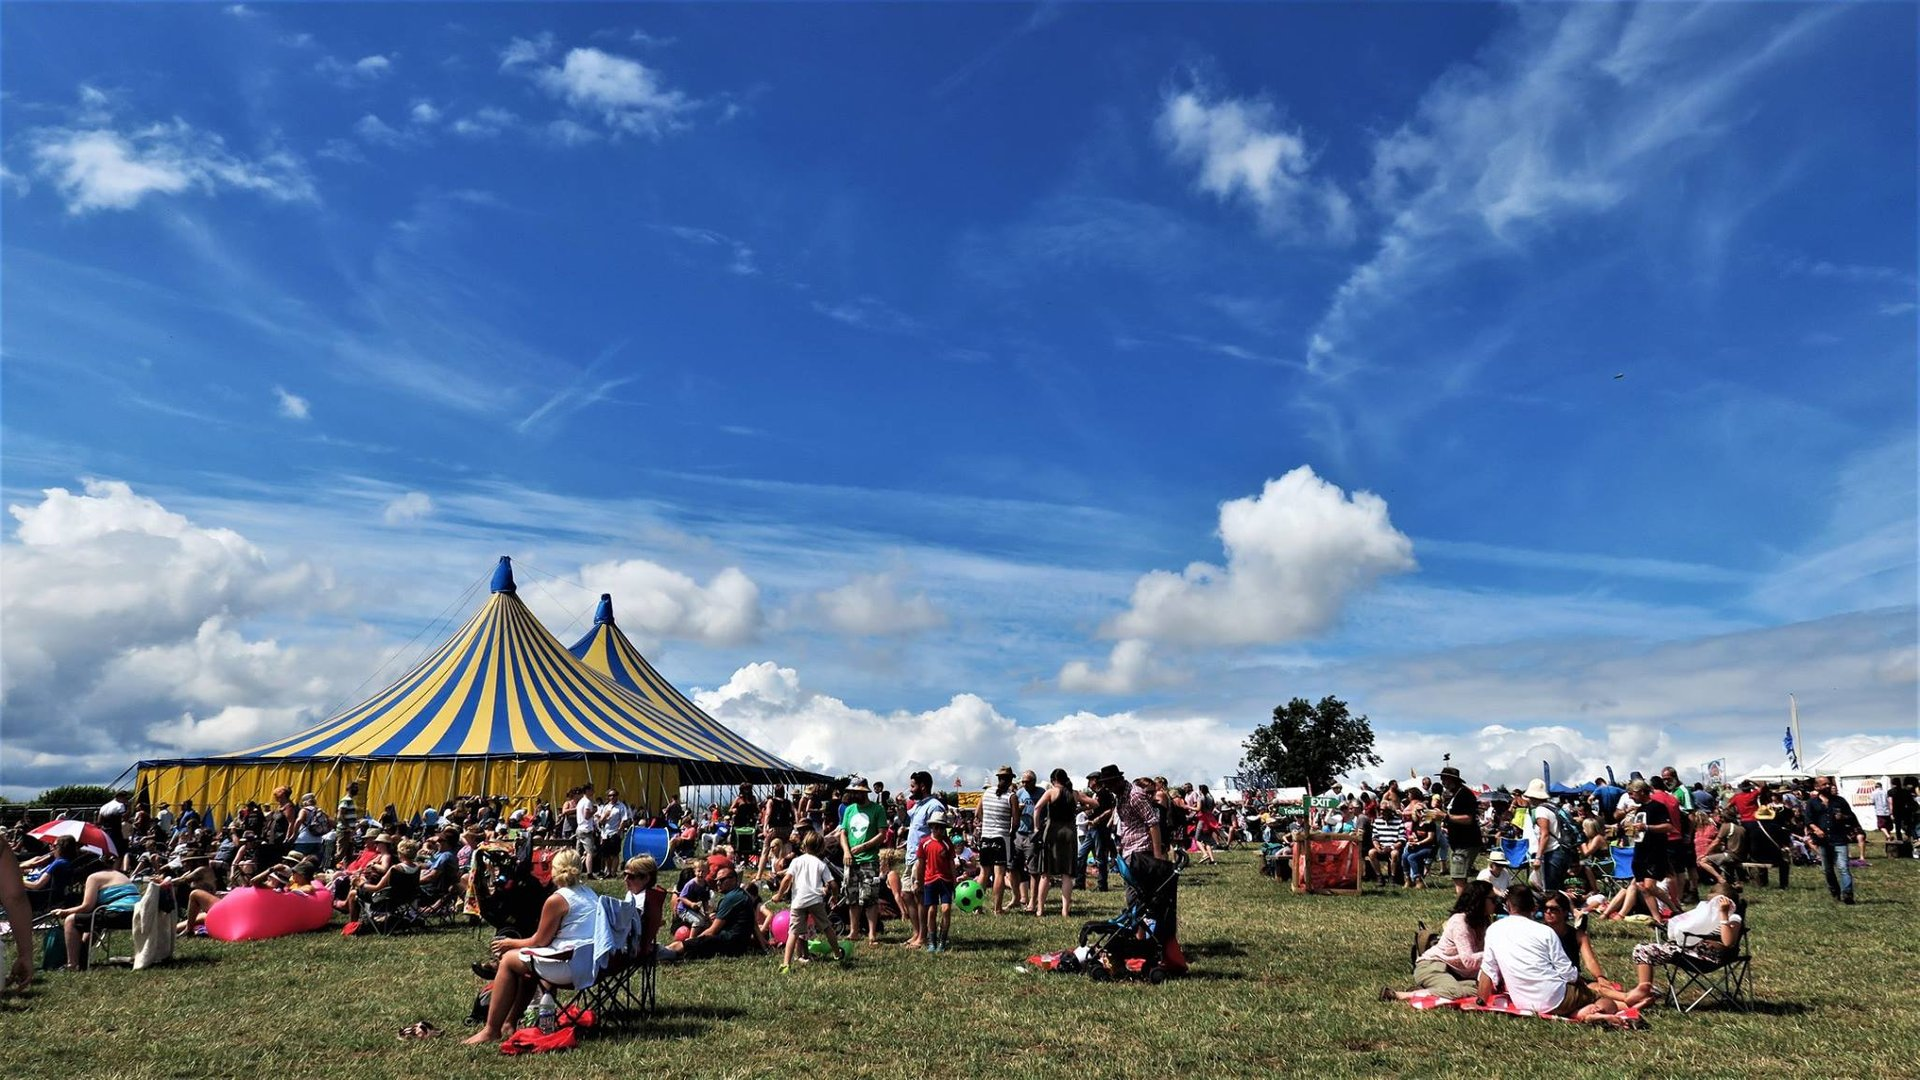 Chagstock Festival in England 2020 - Best Time